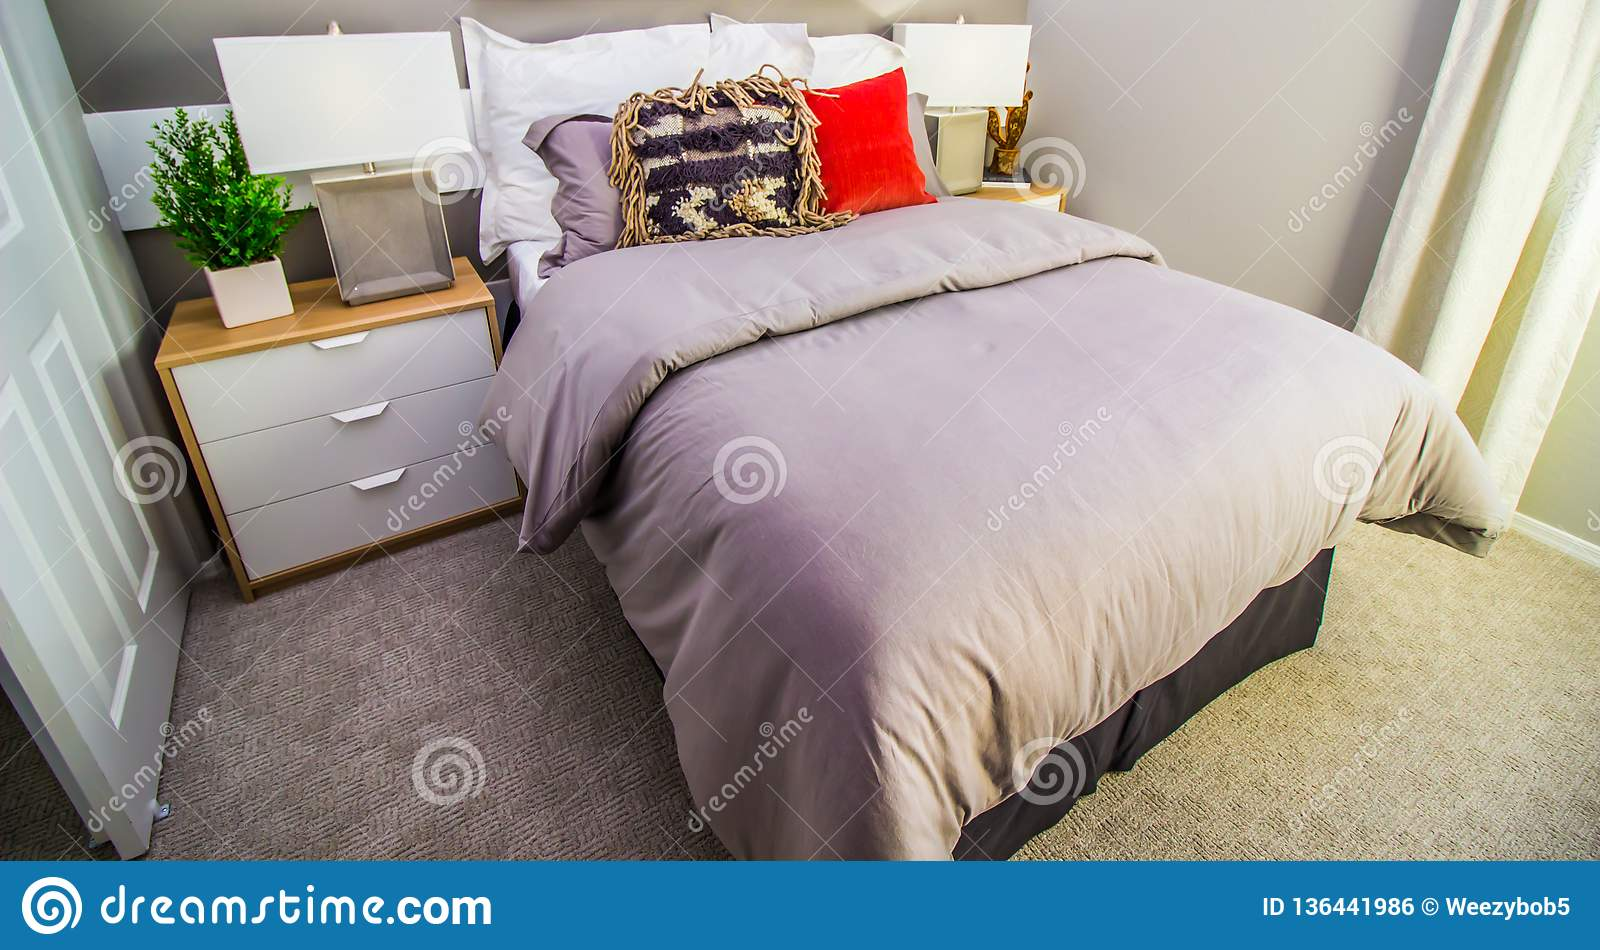 Modern Bedroom With Bed Night Stands And Lamps Stock Photo Image Of Vase Floor 136441986